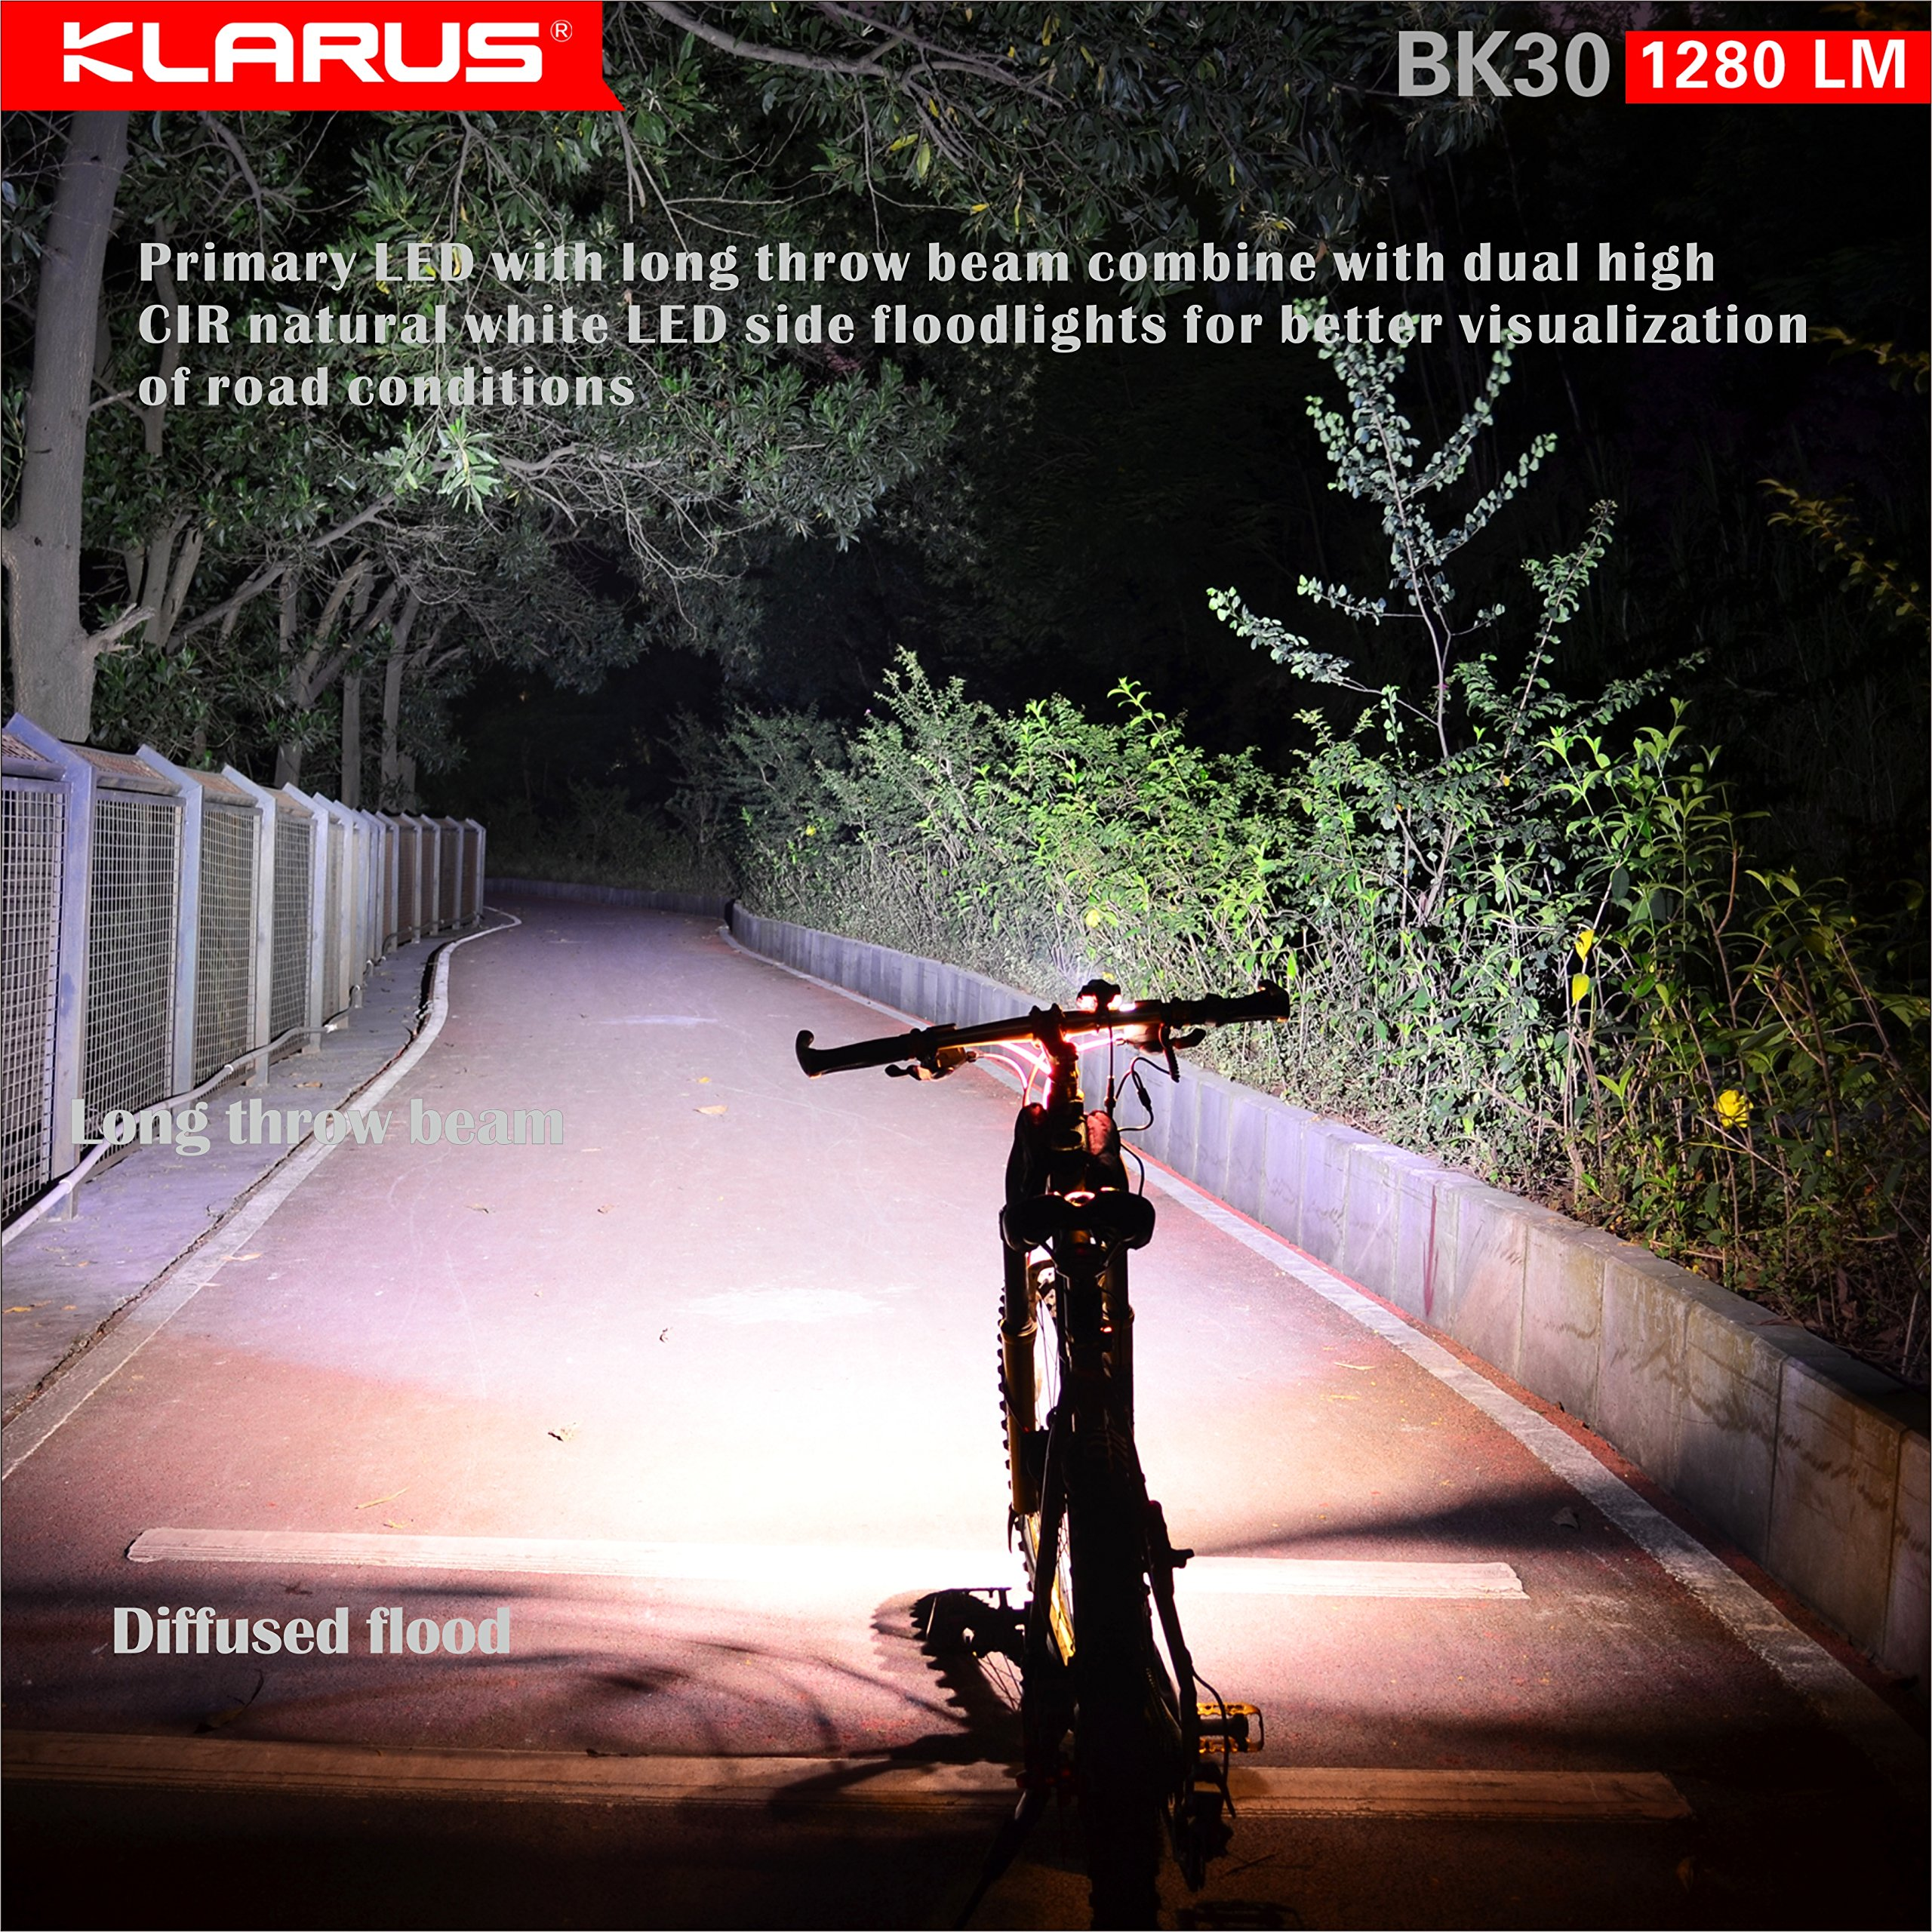 Newest Design Bundle: KLARUS BK30 1280 Lumen, Adjustable Triple Head LED Bikelight, Main light CREE XM-L2 U2, side lights CREE XP-G2, Tools Free, with C2 Charger & two 18650 Rechargeable Batteries by Klarus (Image #2)